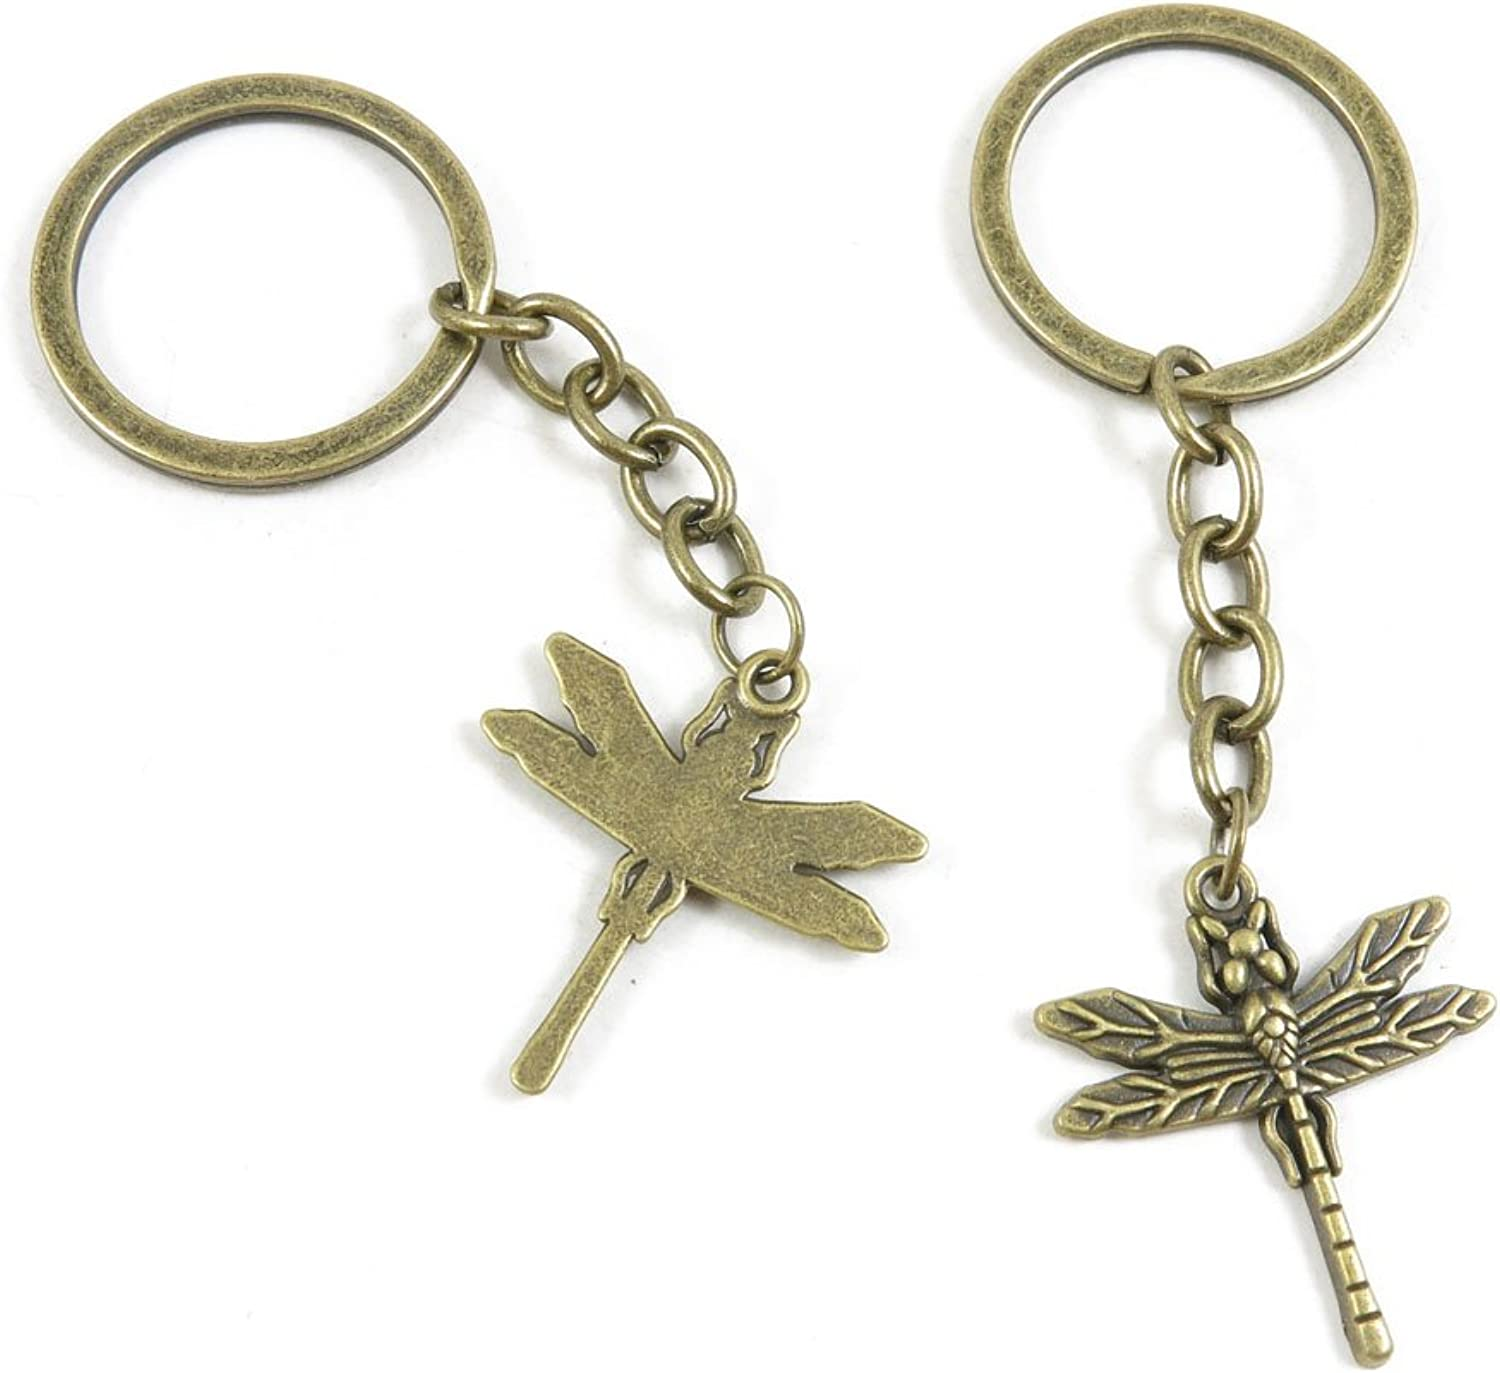 190 Pieces Fashion Jewelry Keyring Keychain Door Car Key Tag Ring Chain Supplier Supply Wholesale Bulk Lots C8QI2 Dragonfly